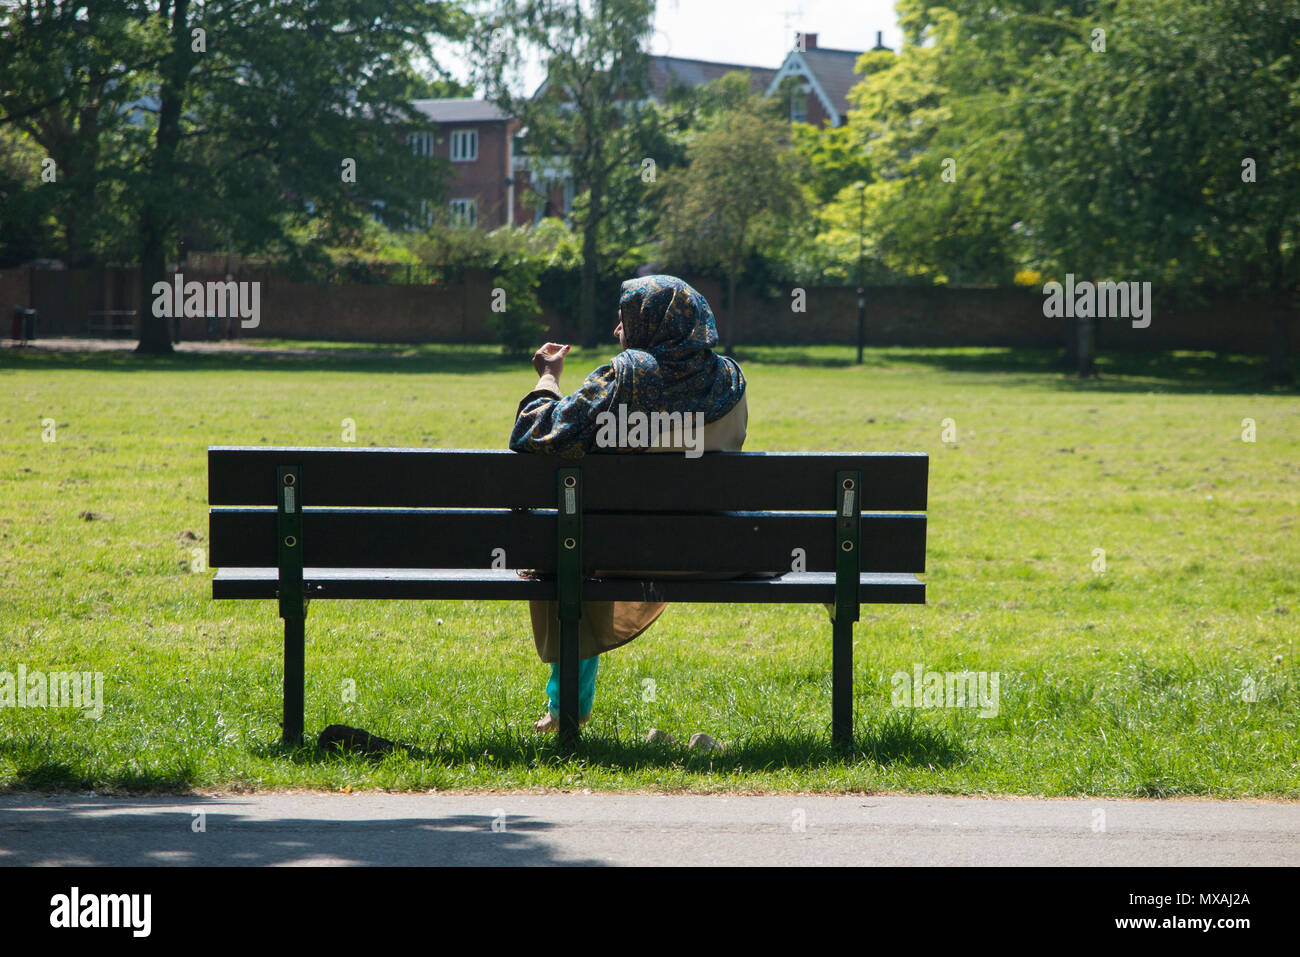 A muslim woman on the phone in a London park - Stock Image